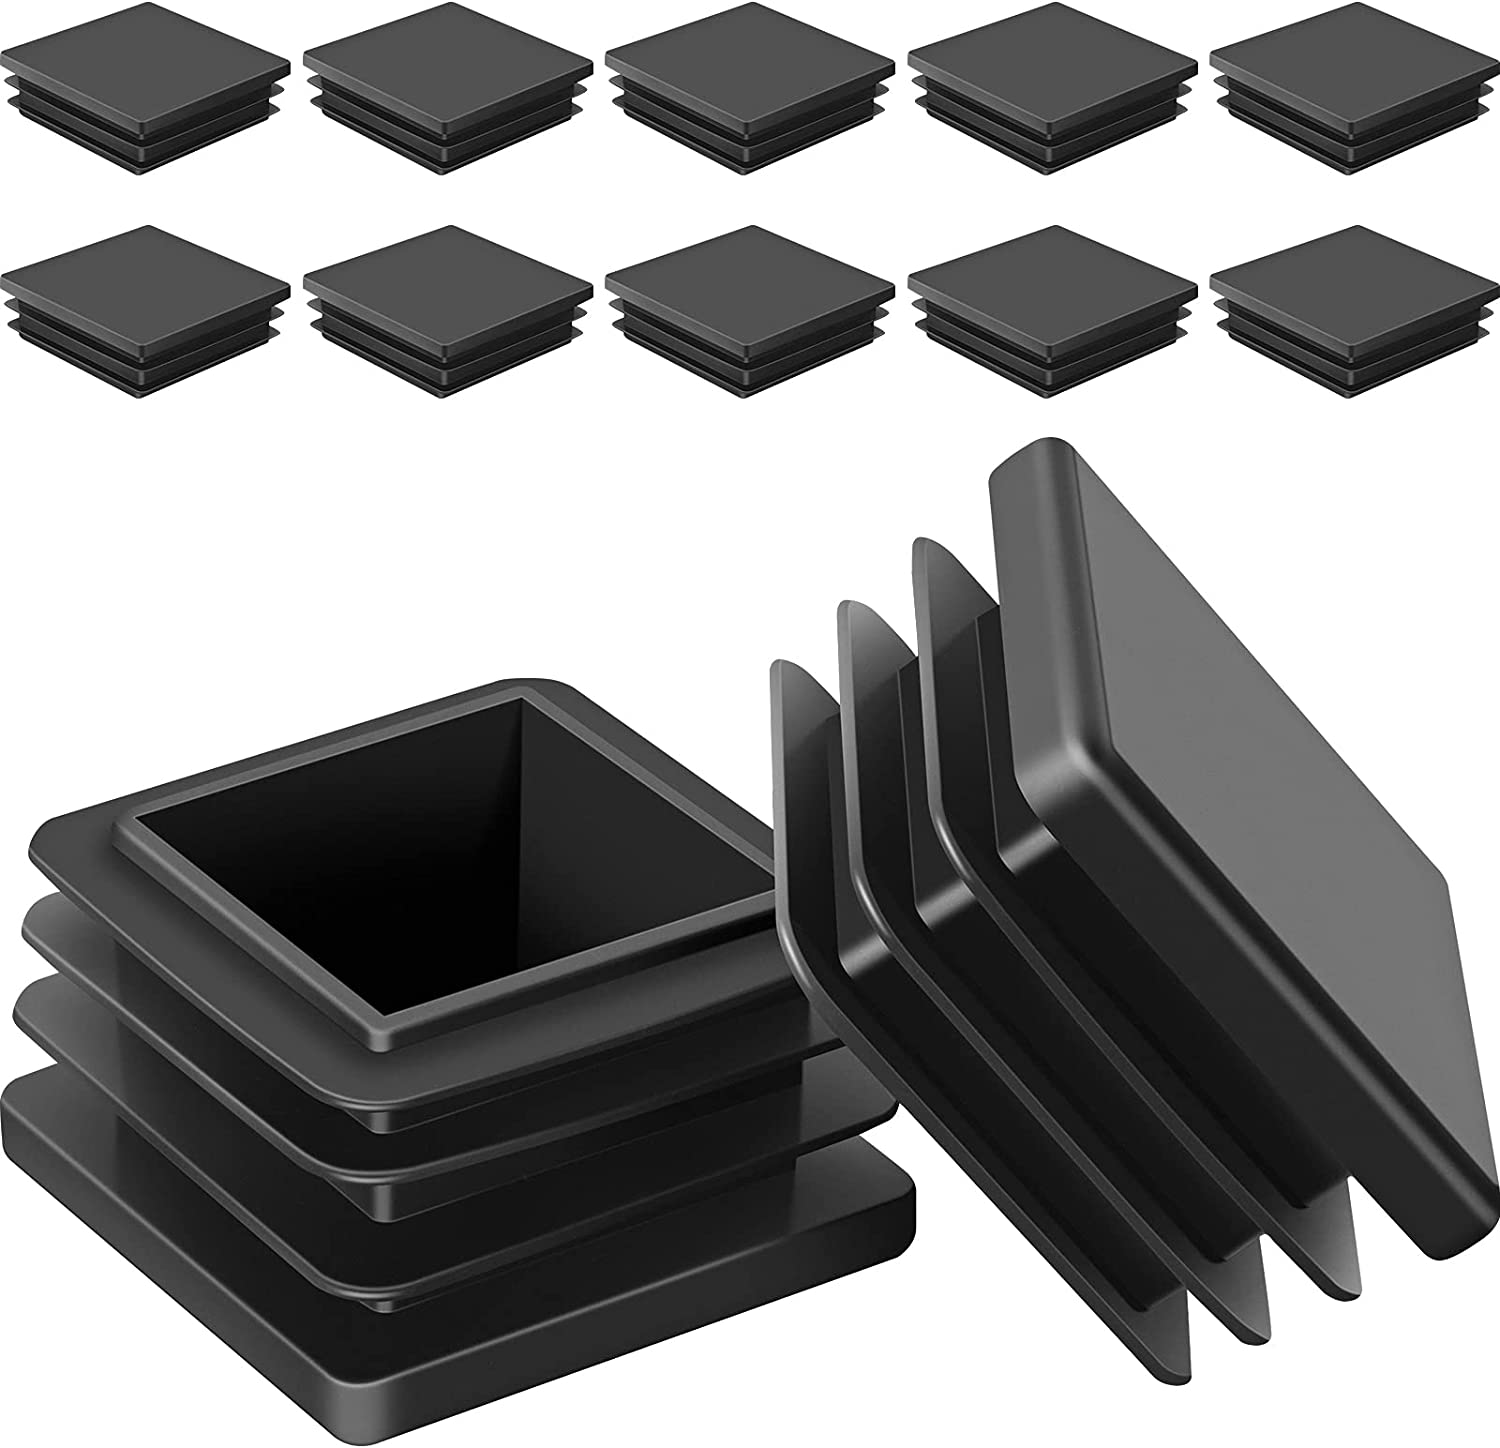 30 Pieces Square Plastic Plugs Tubing Post End Caps Chair Glide End Caps Glide Insert Pipe Covers Furniture Legs Replacement Caps for Fence Railings, Door Railing, Trailer Frame Ends (1.5 inch)